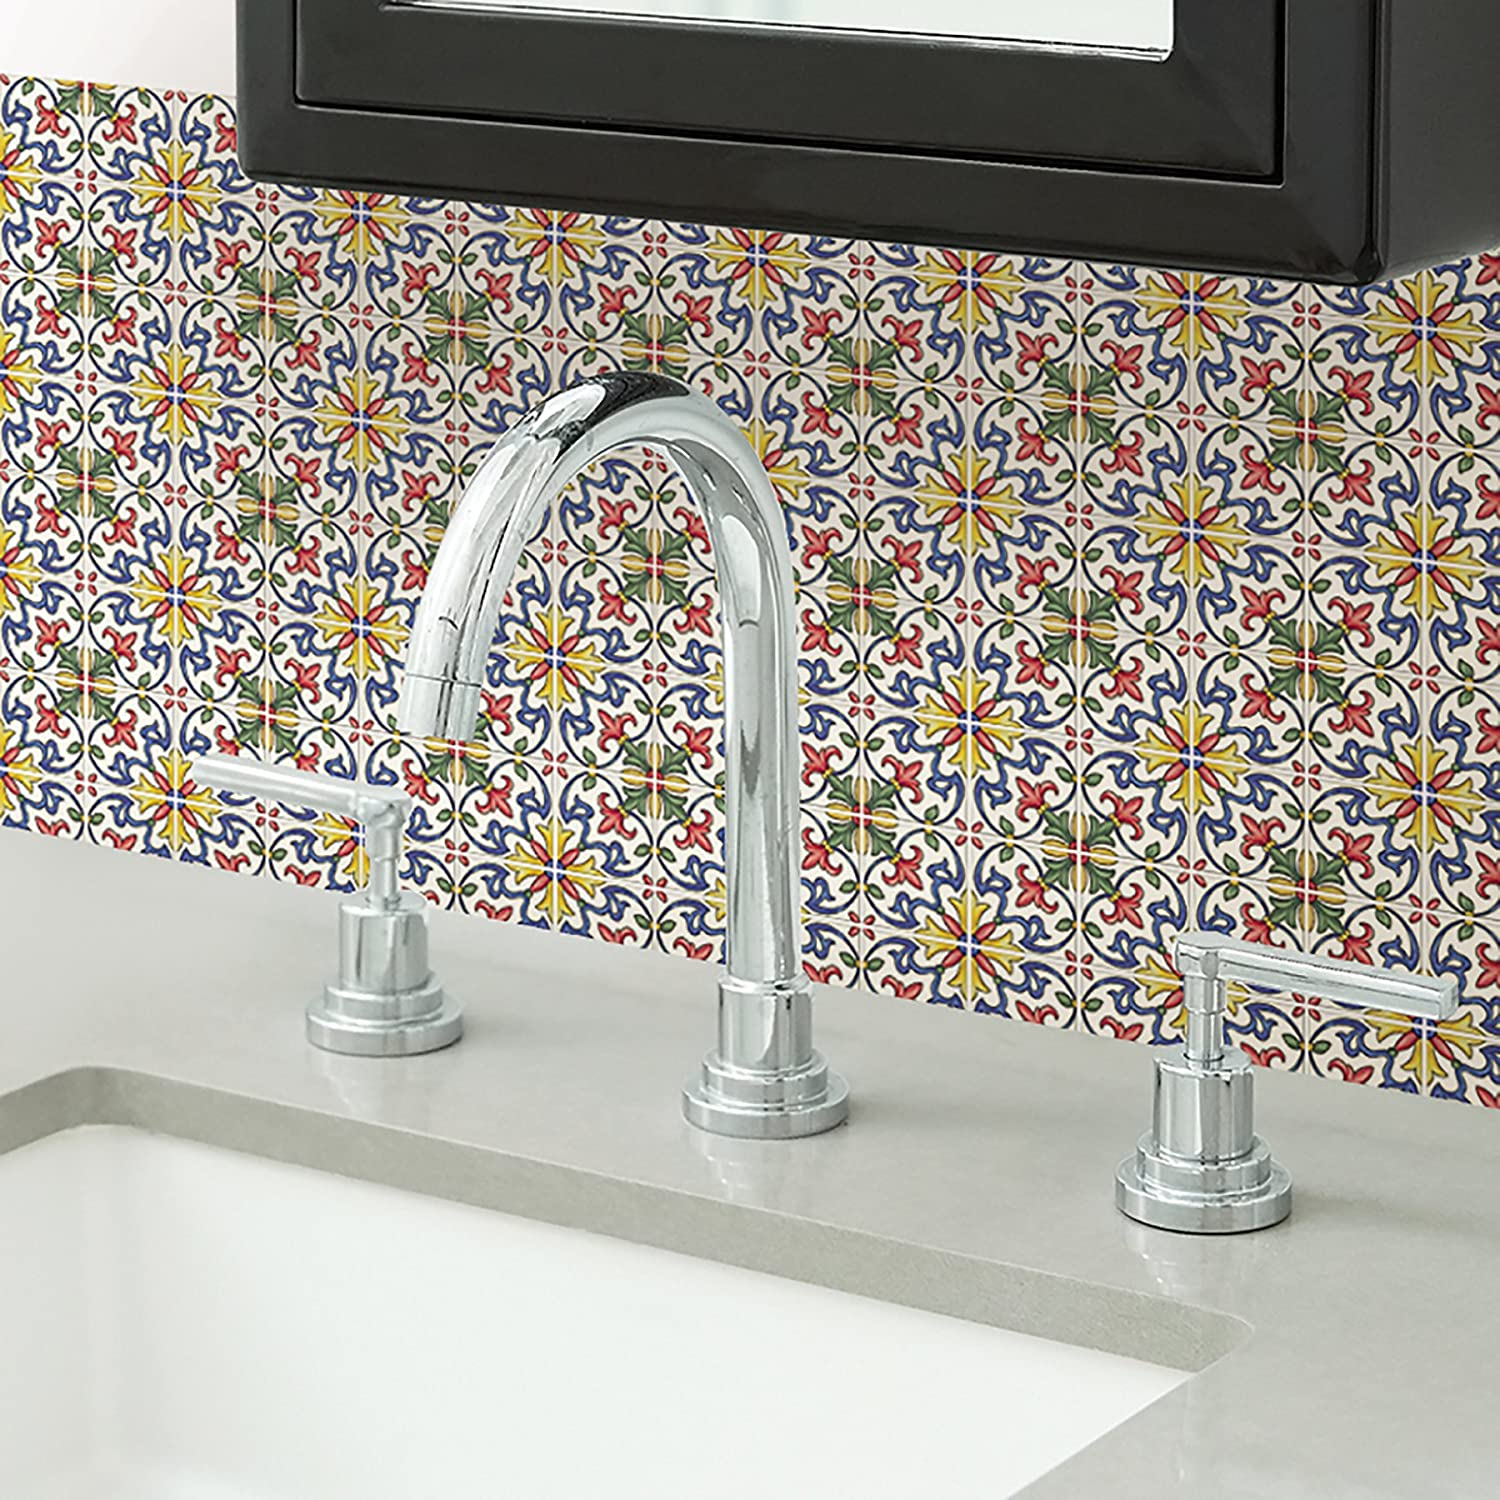 Multi-Color In Home NH2365 Tuscan Peel /& Stick Backsplash Tiles